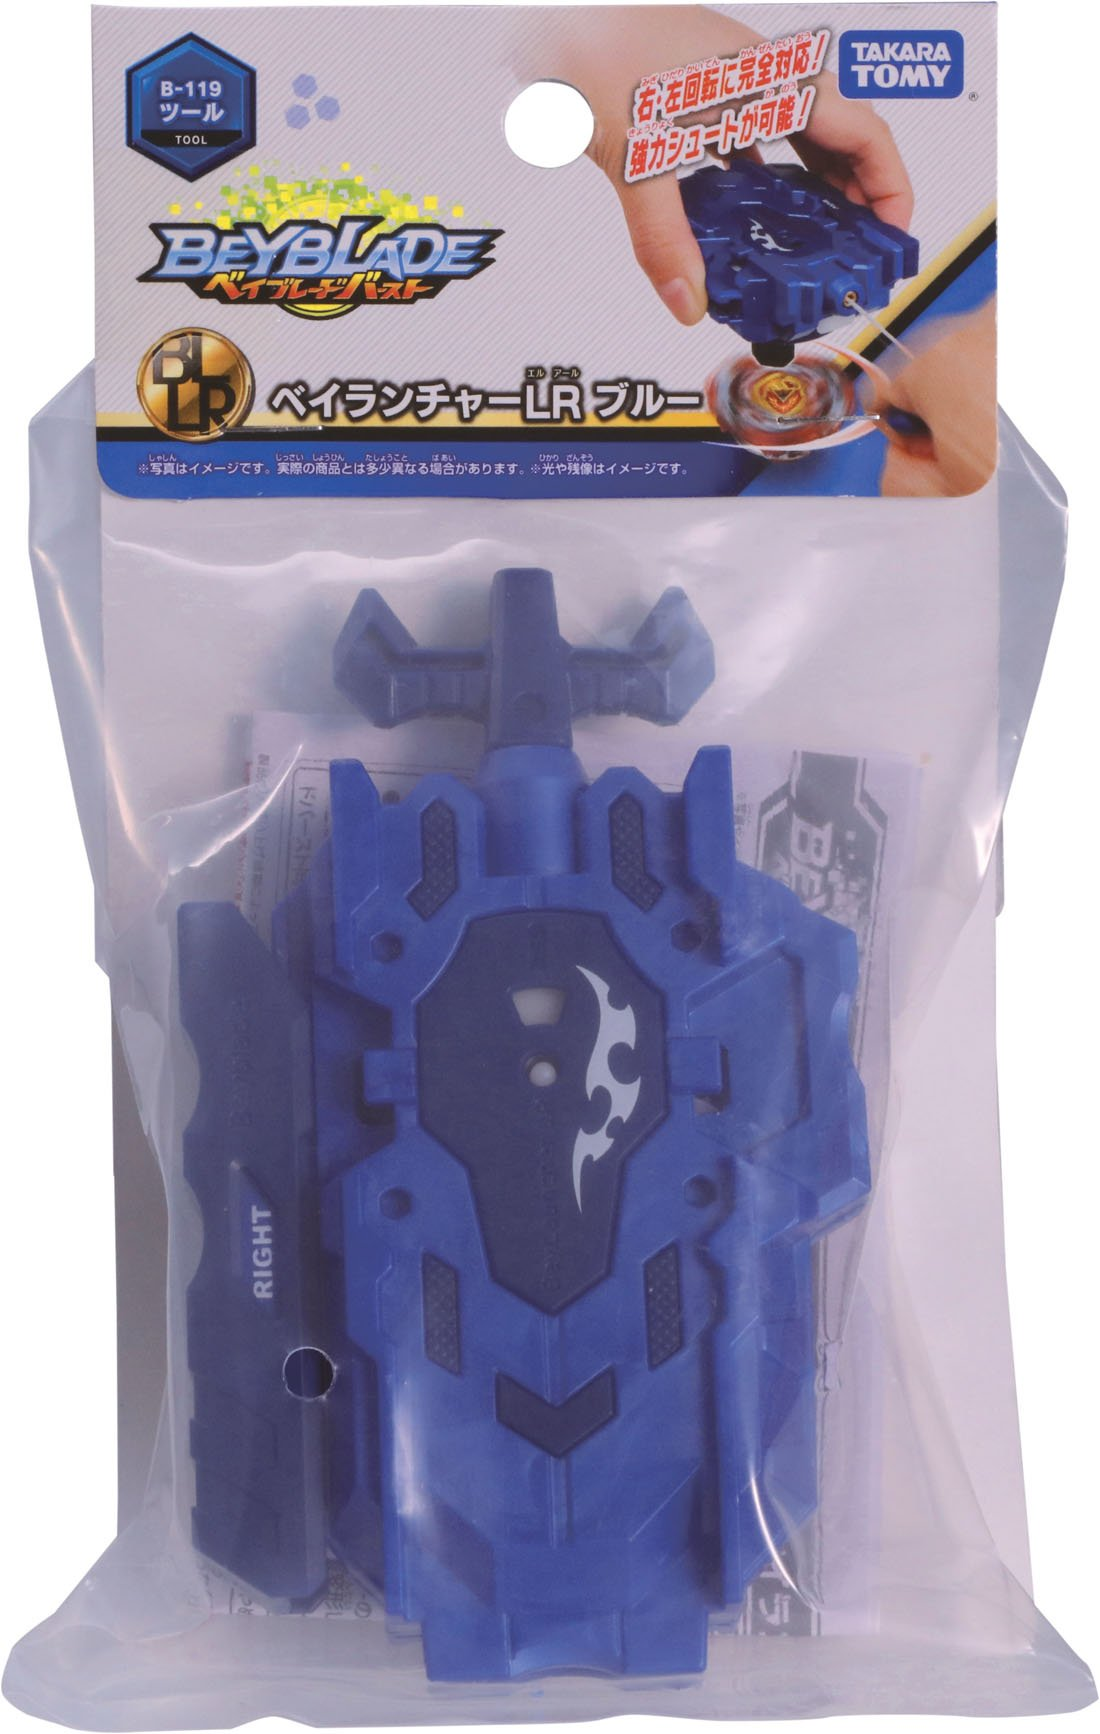 Beyblade Burst B-119 Bey Launcher LR Blue [Japan import]